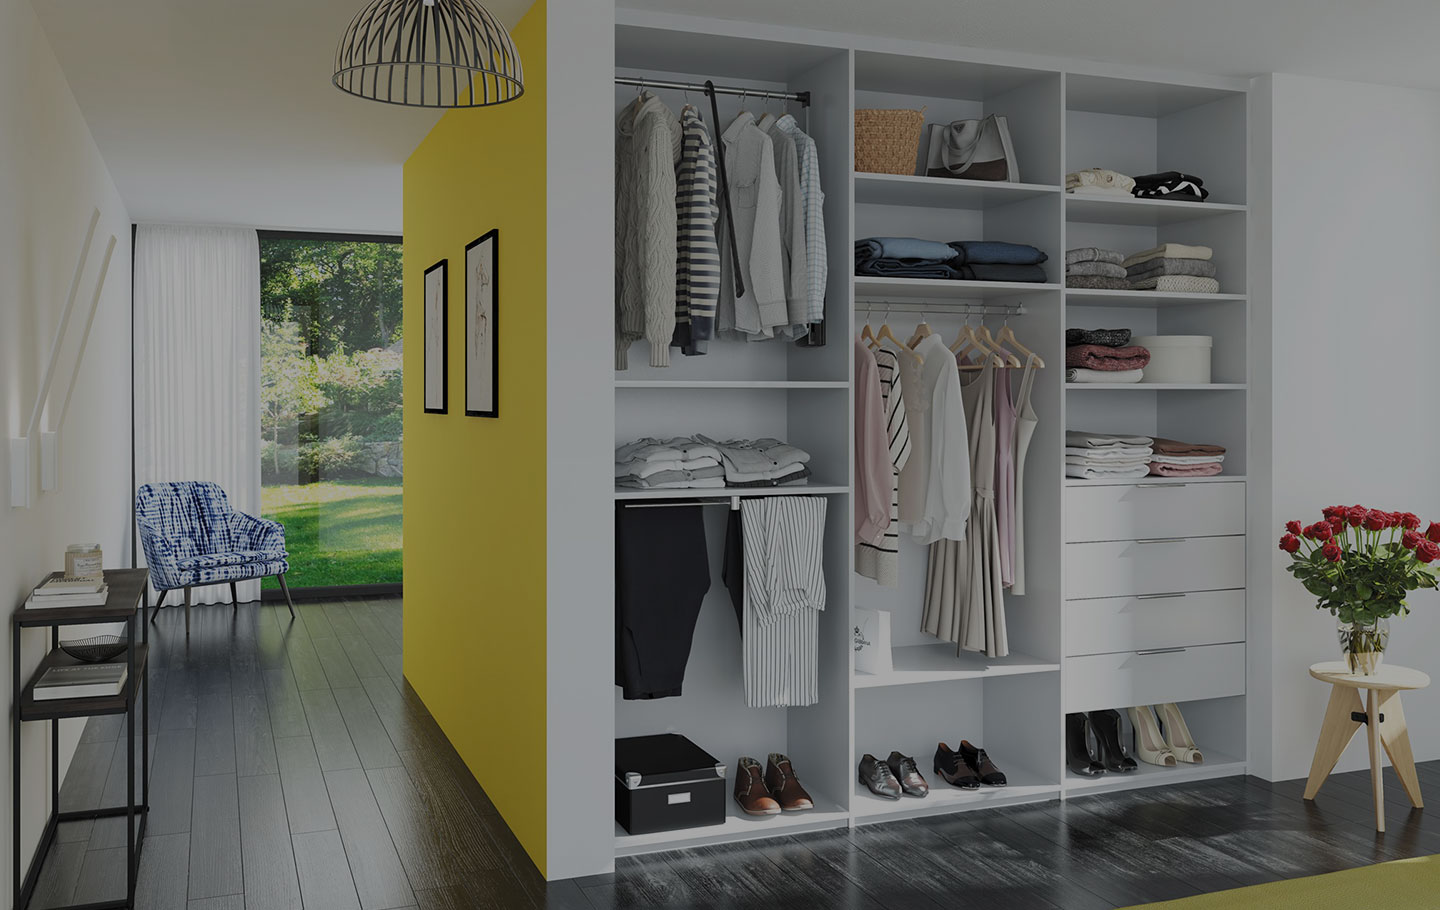 Conception de dressing sur mesure